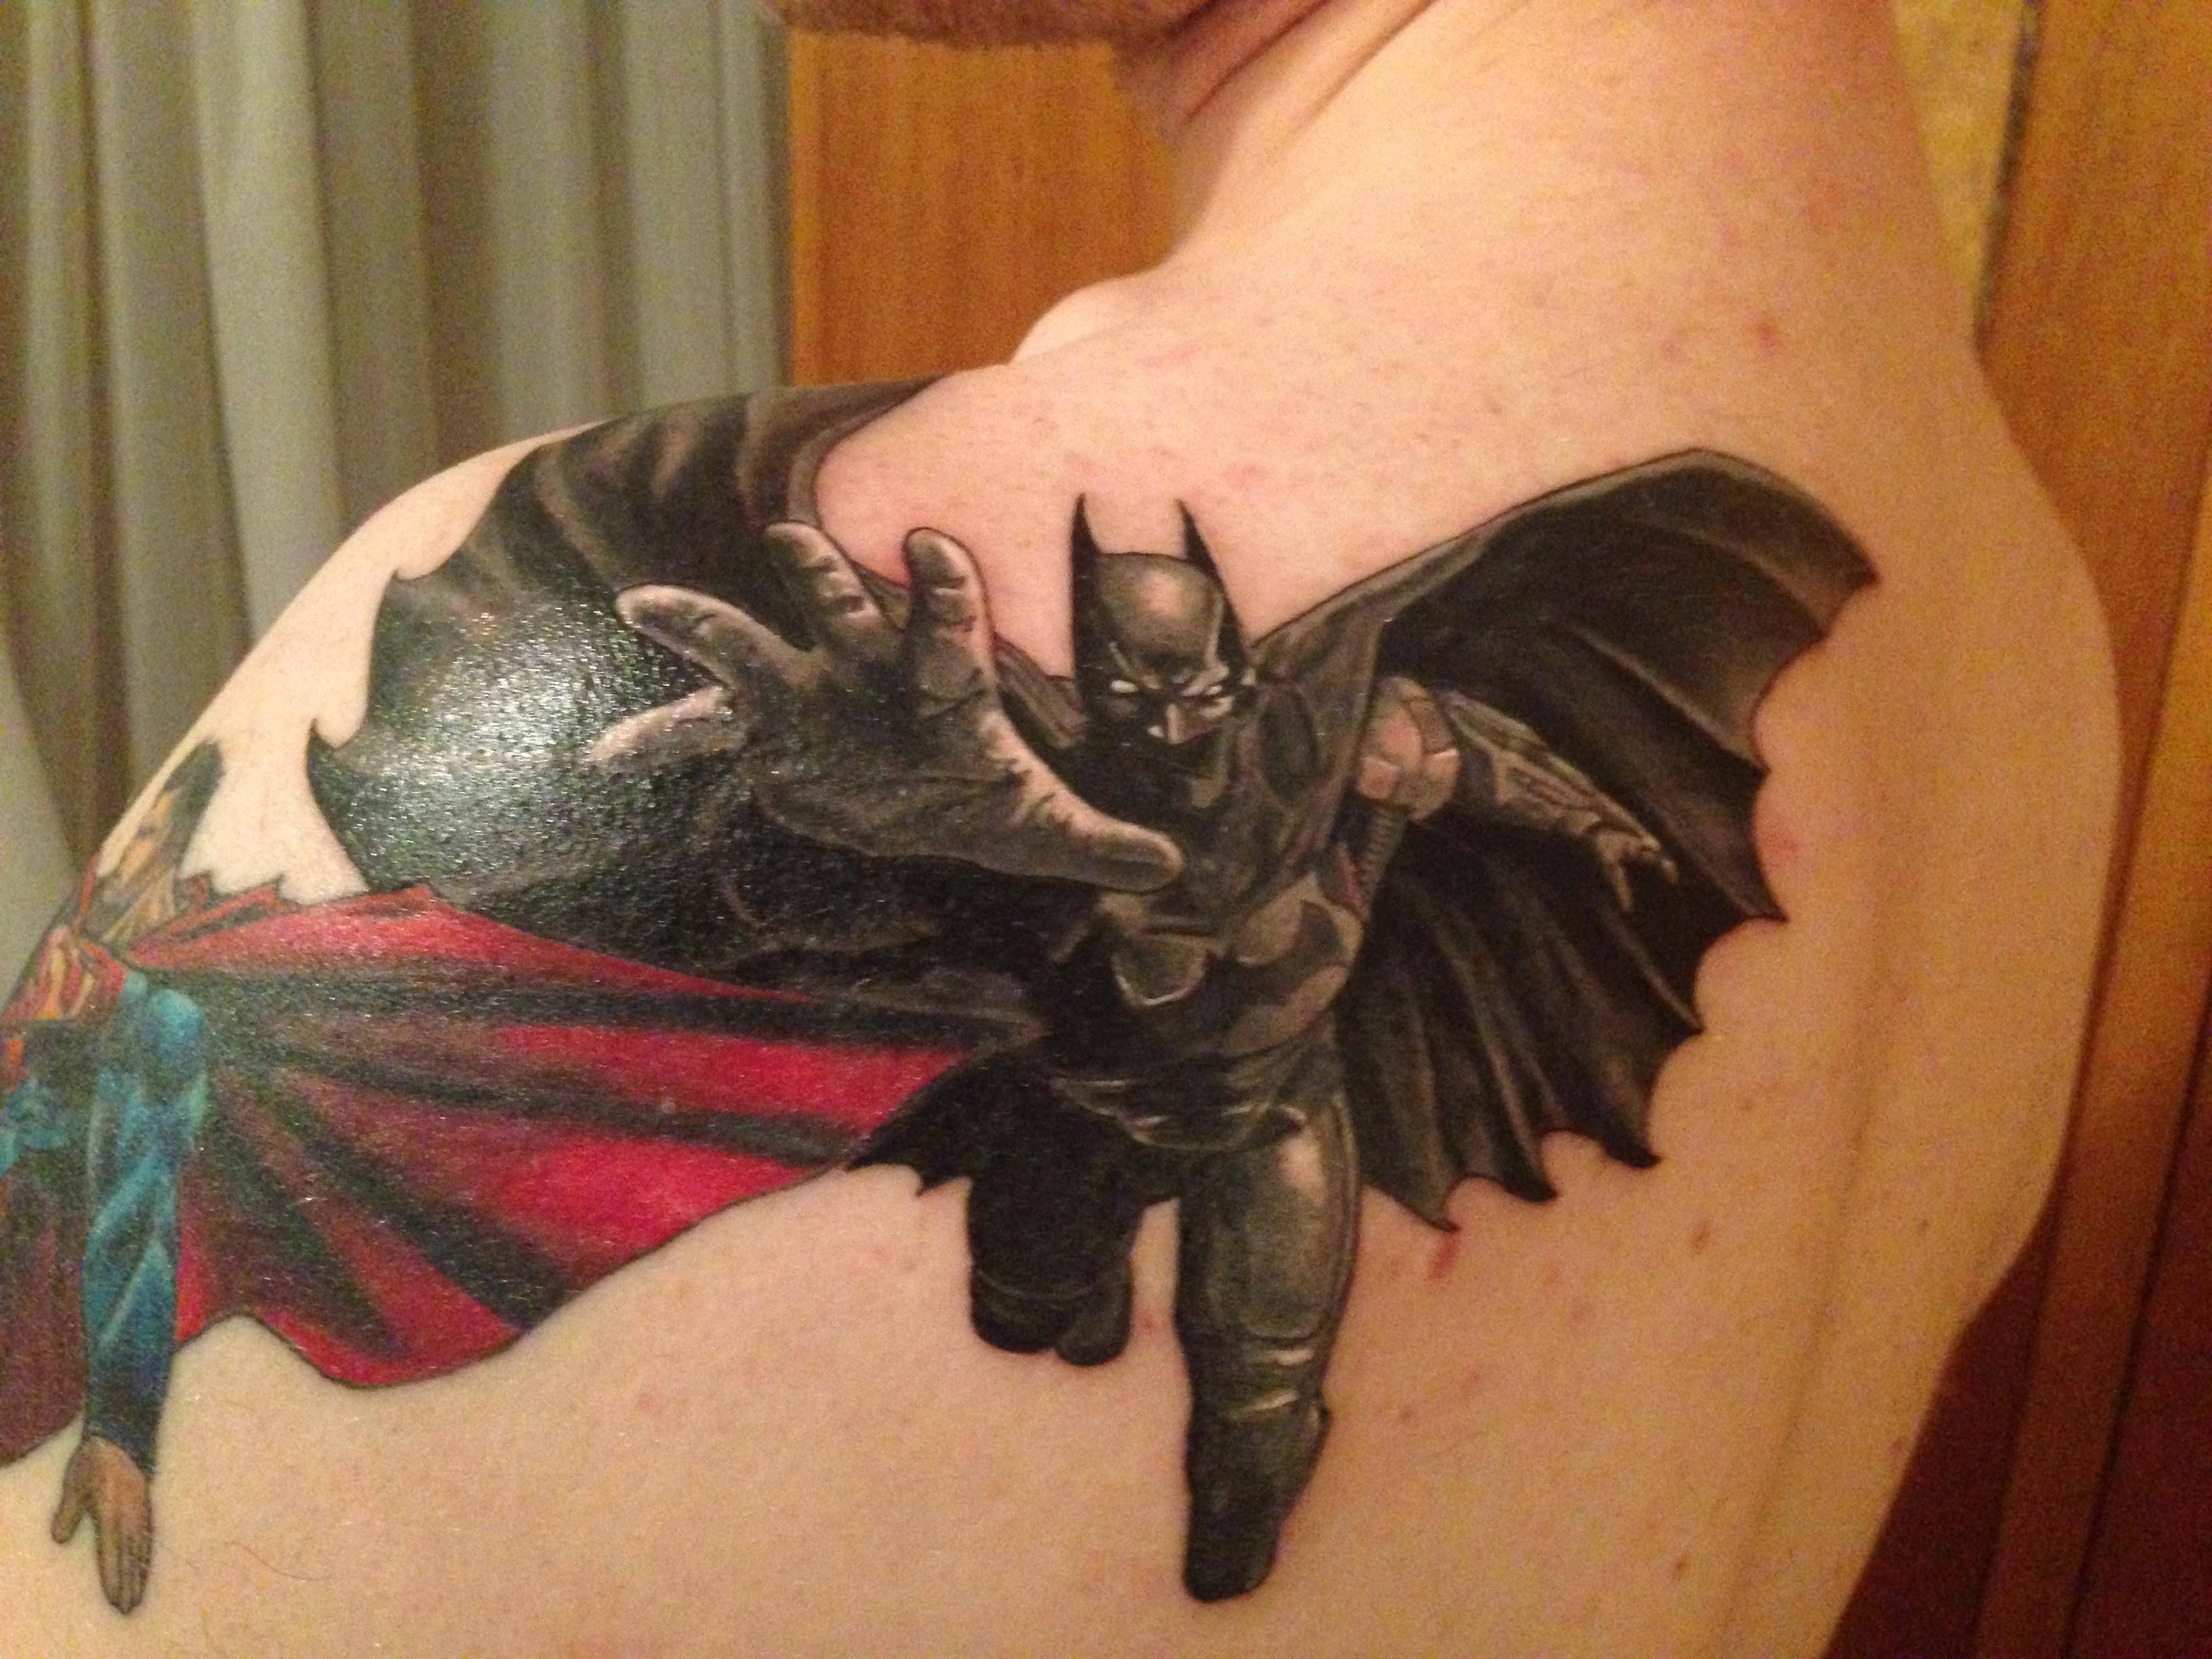 Batman Tattoos Designs  Ideas and MeaningBatman Logo Tattoos For Men